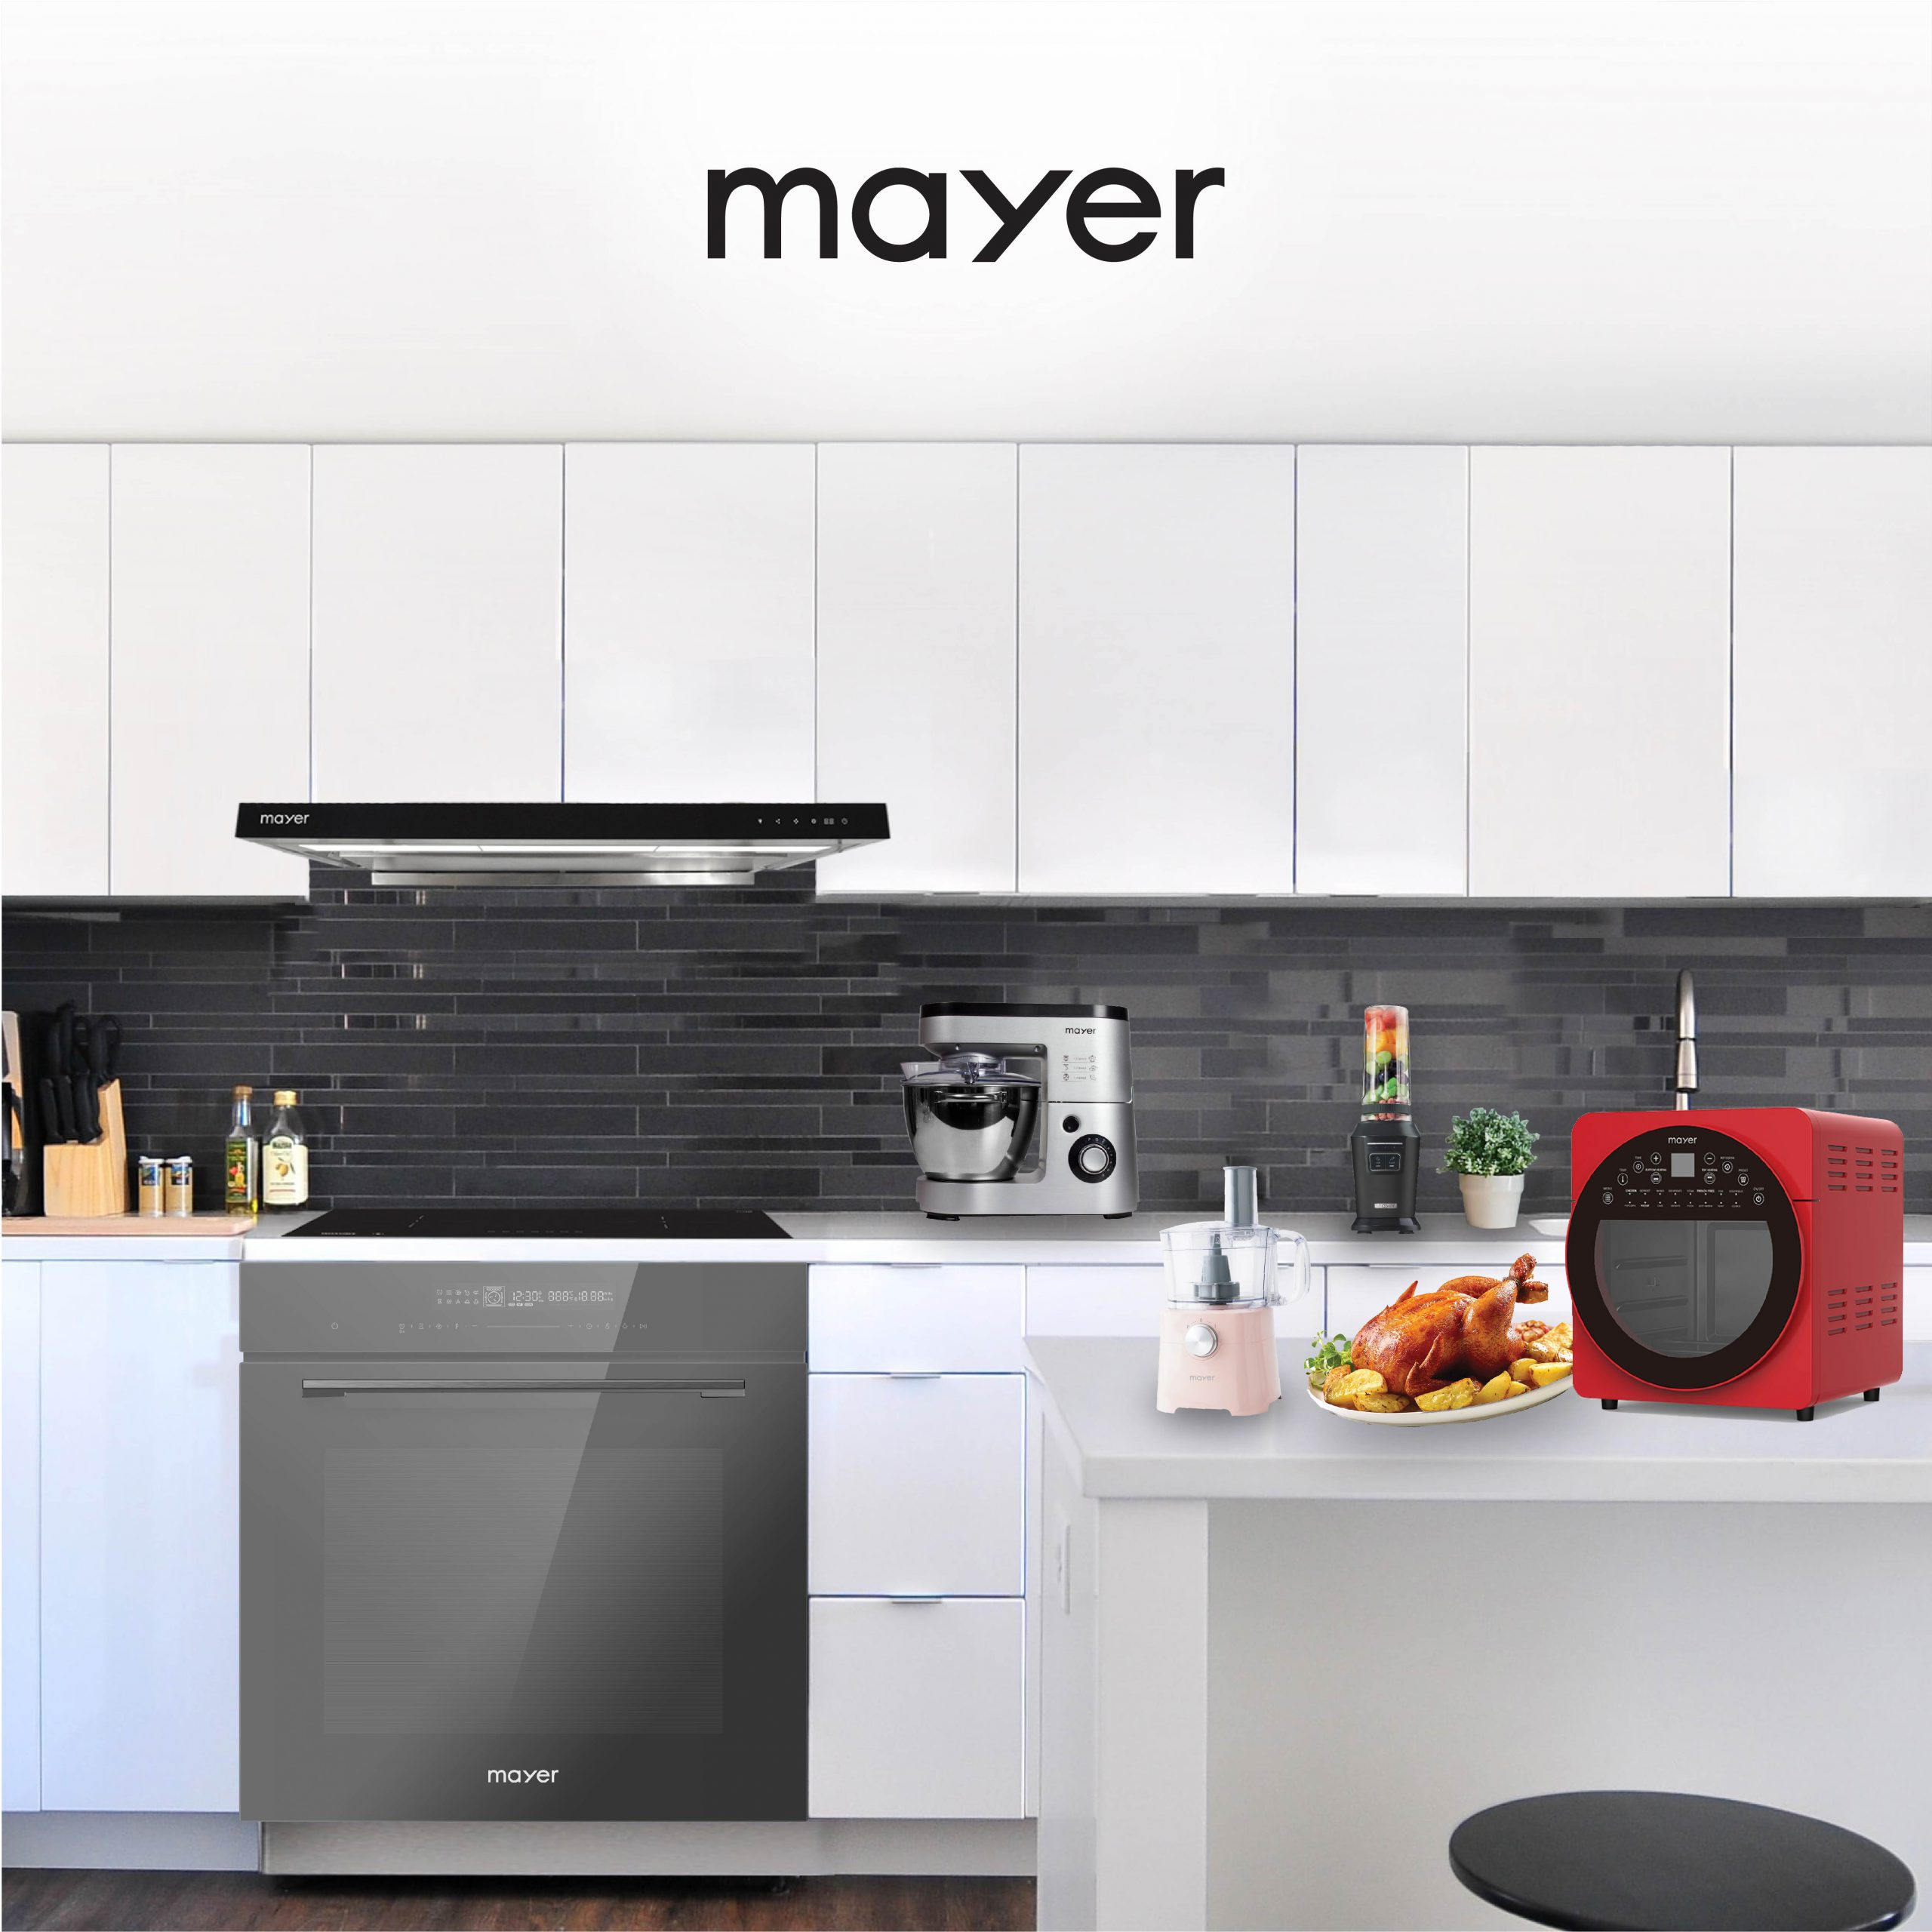 Mayer - 10% Off Total Purchase At All Mayer Showrooms And E-store